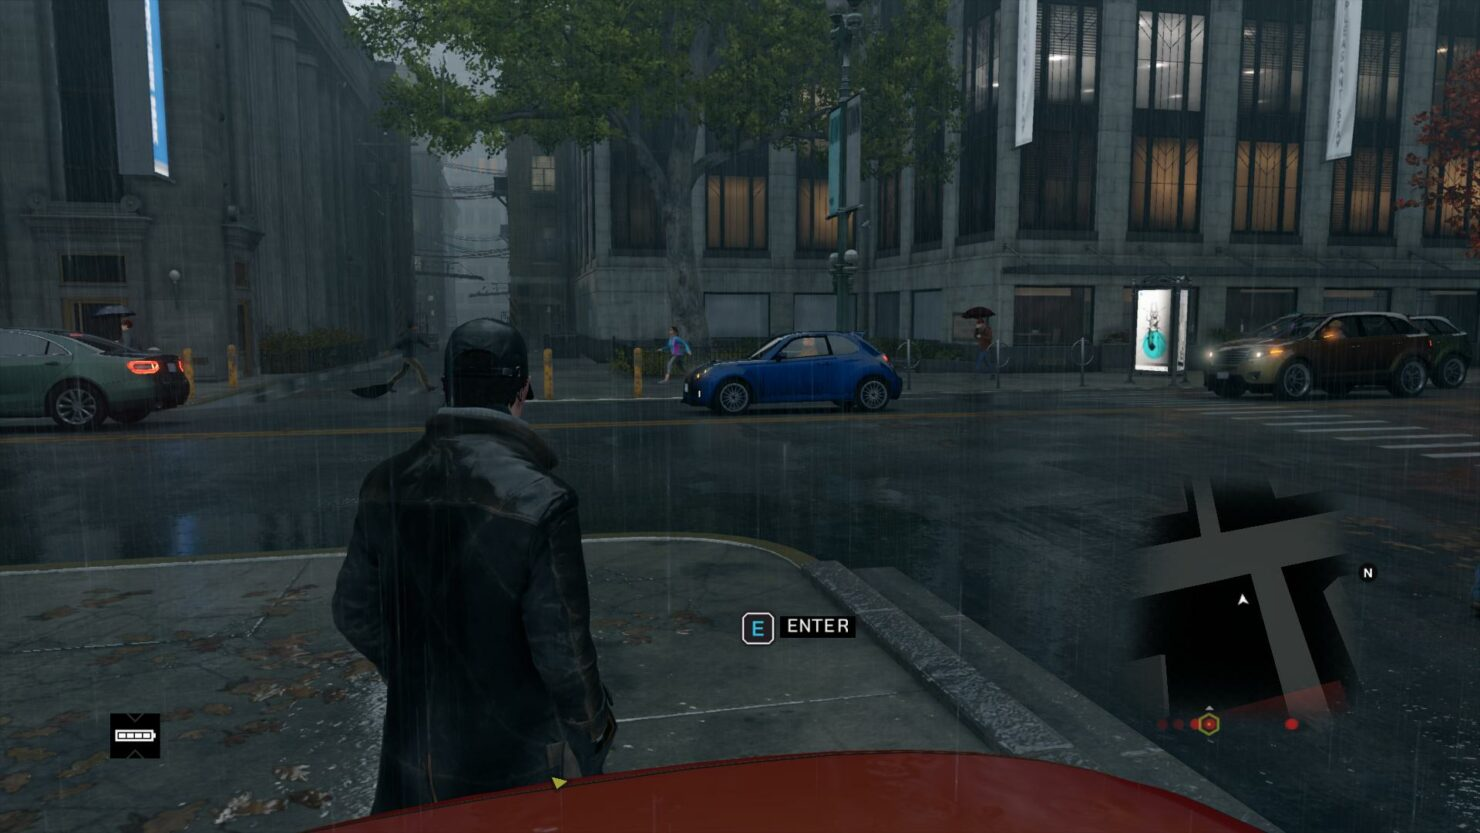 watch_dogs-2014-05-24-14-56-21-66